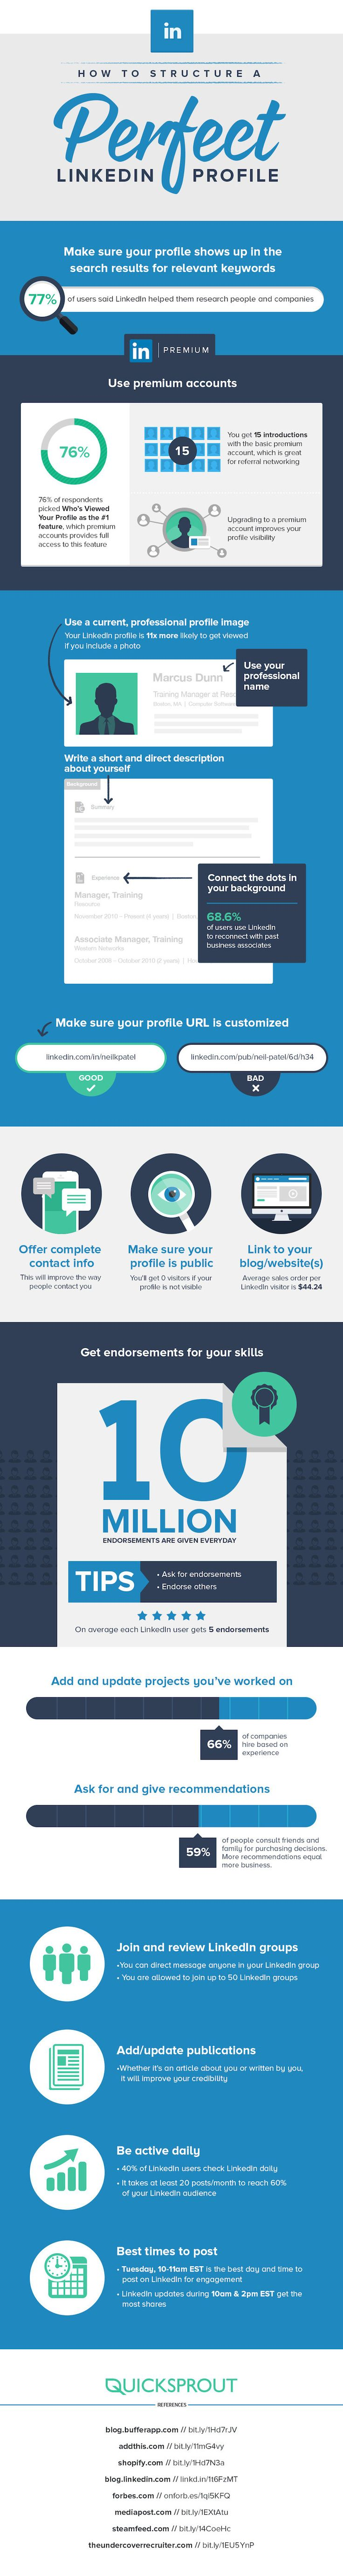 Good Linkedin Infographic From Neil Patel